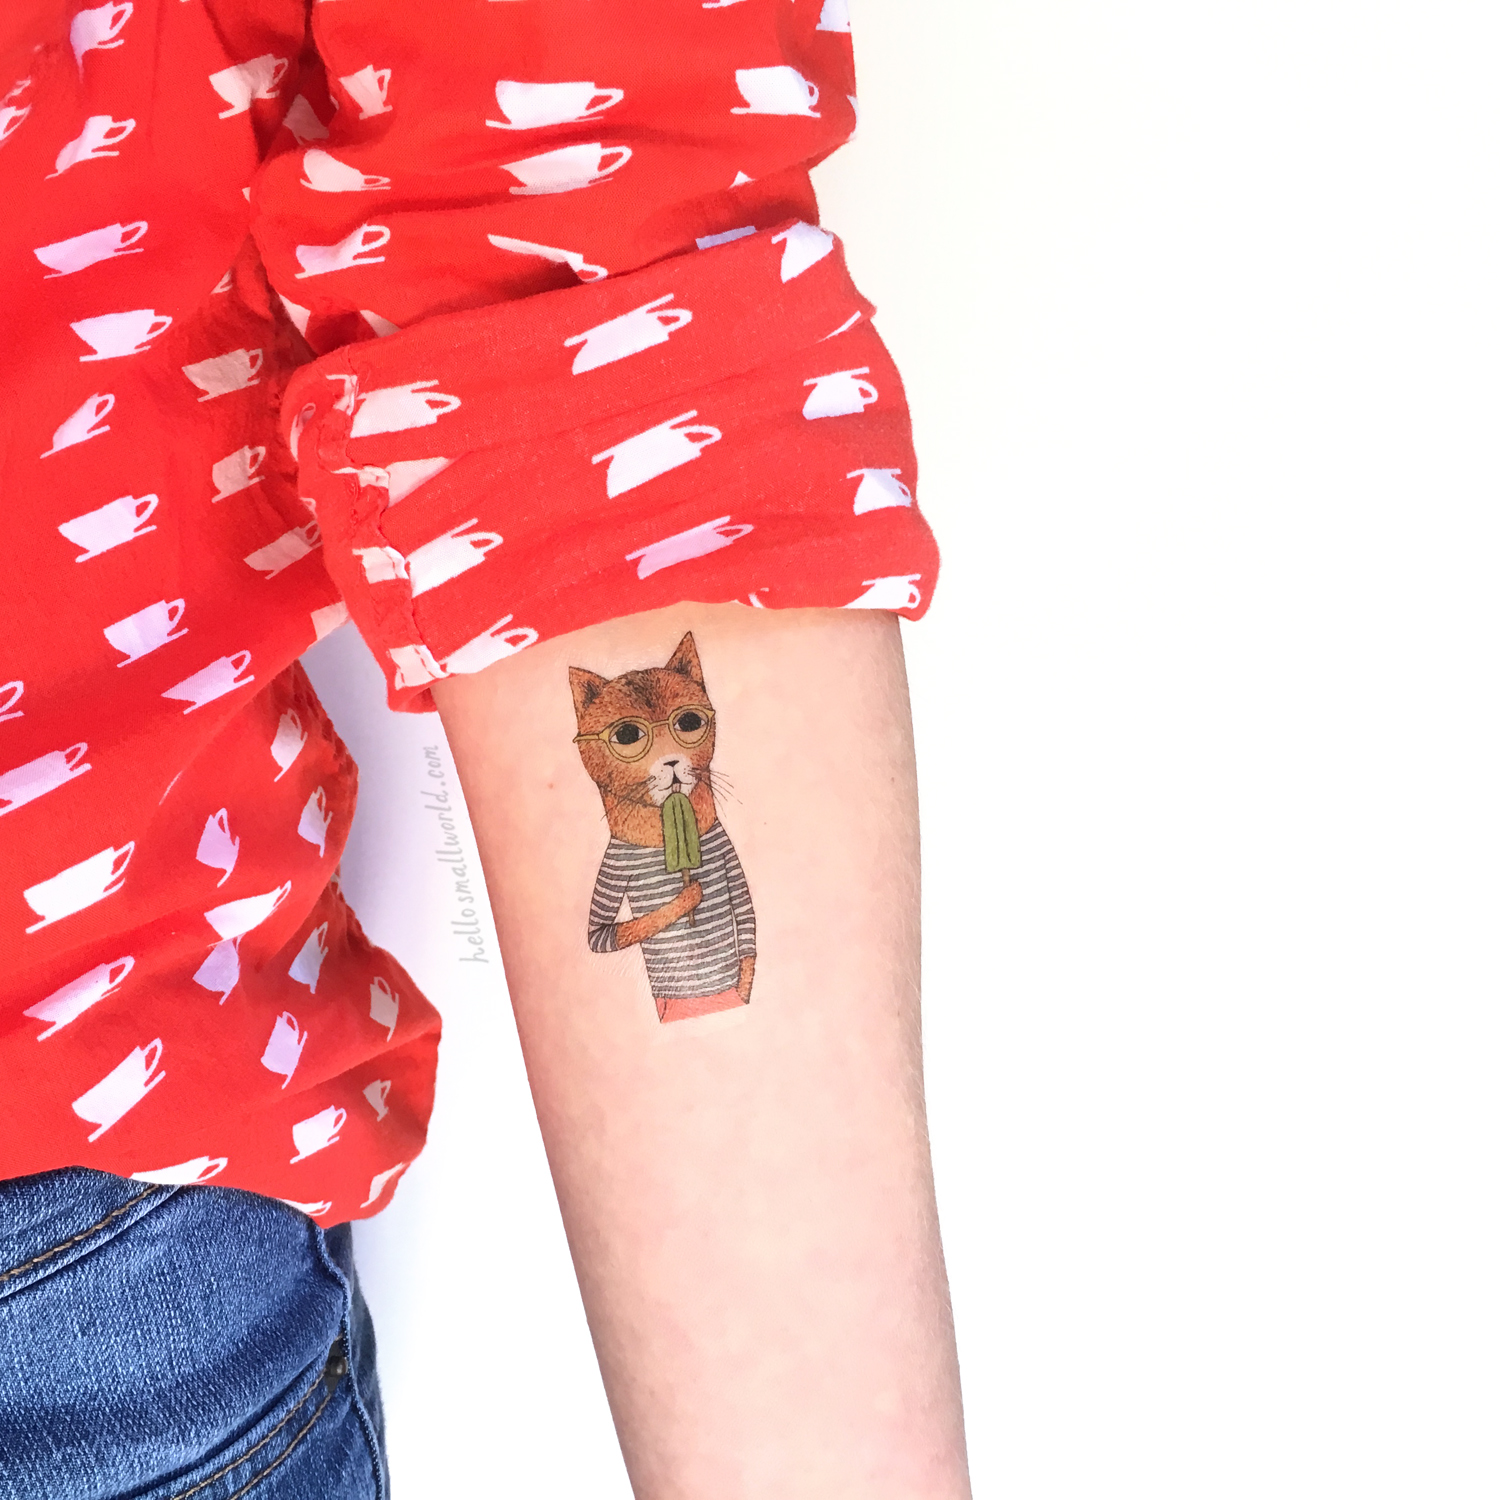 faux tattoo of cool cat illustration by hello small world